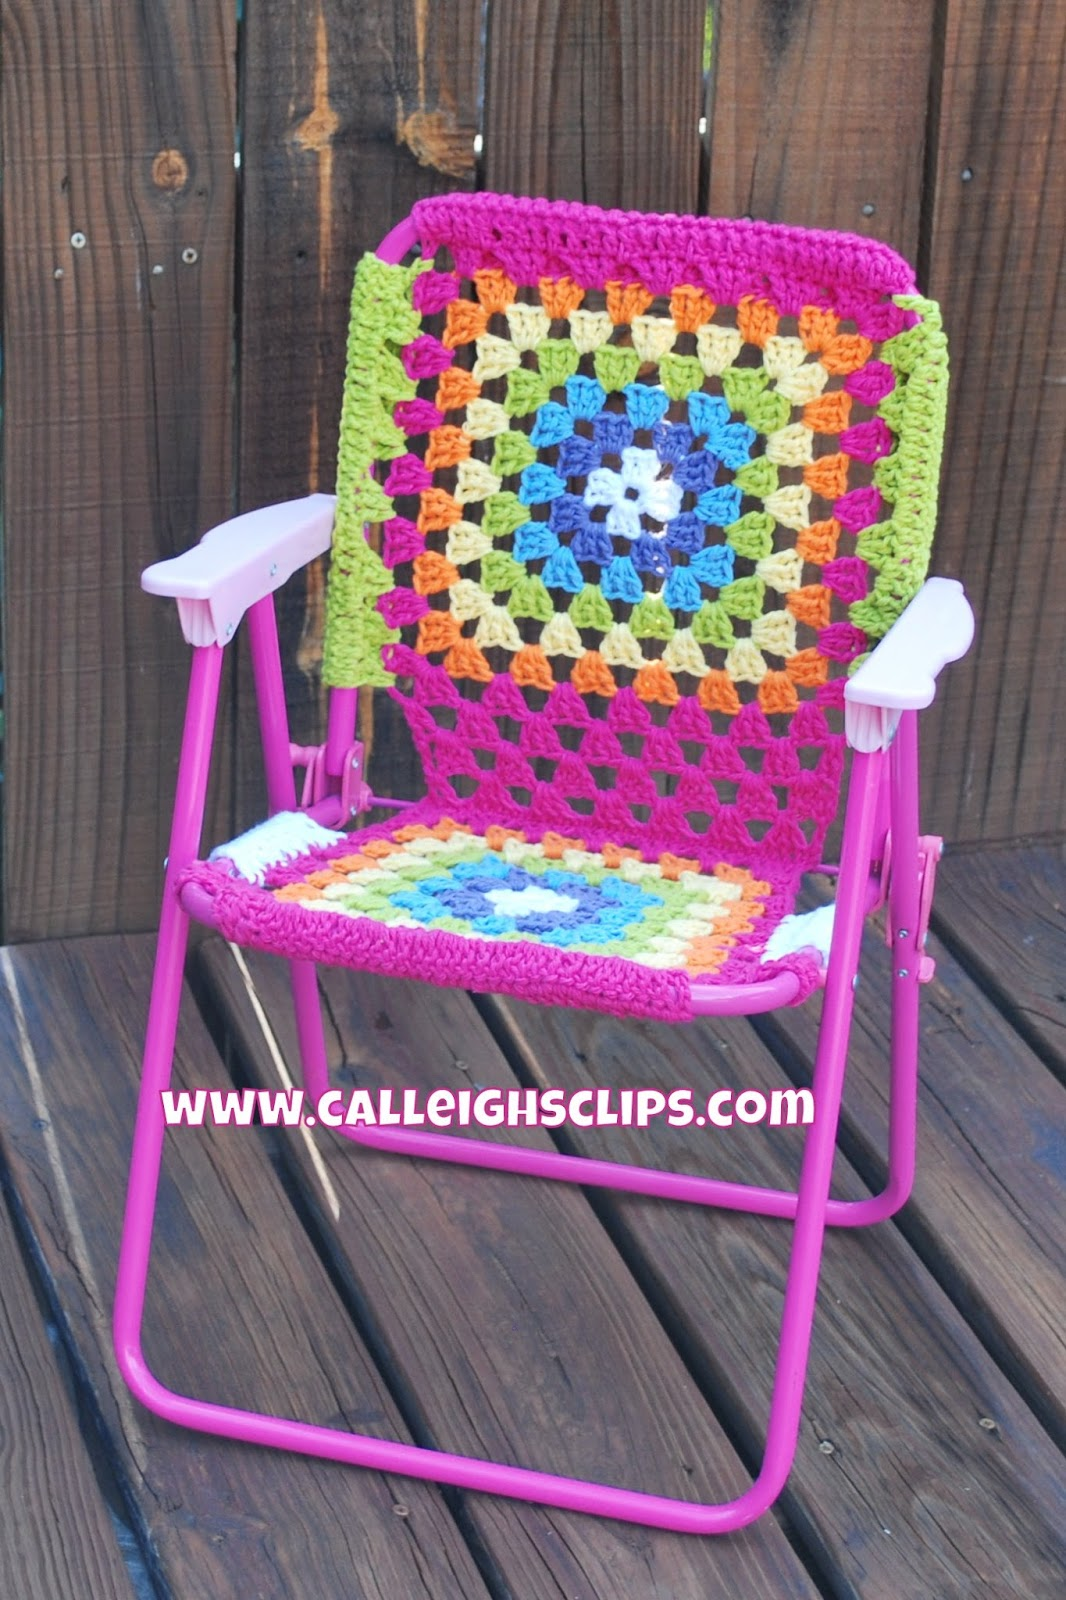 Macrame Lawn Chair Towel Clips For Beach Chairs Calleigh 39s And Crochet Creations Patterns